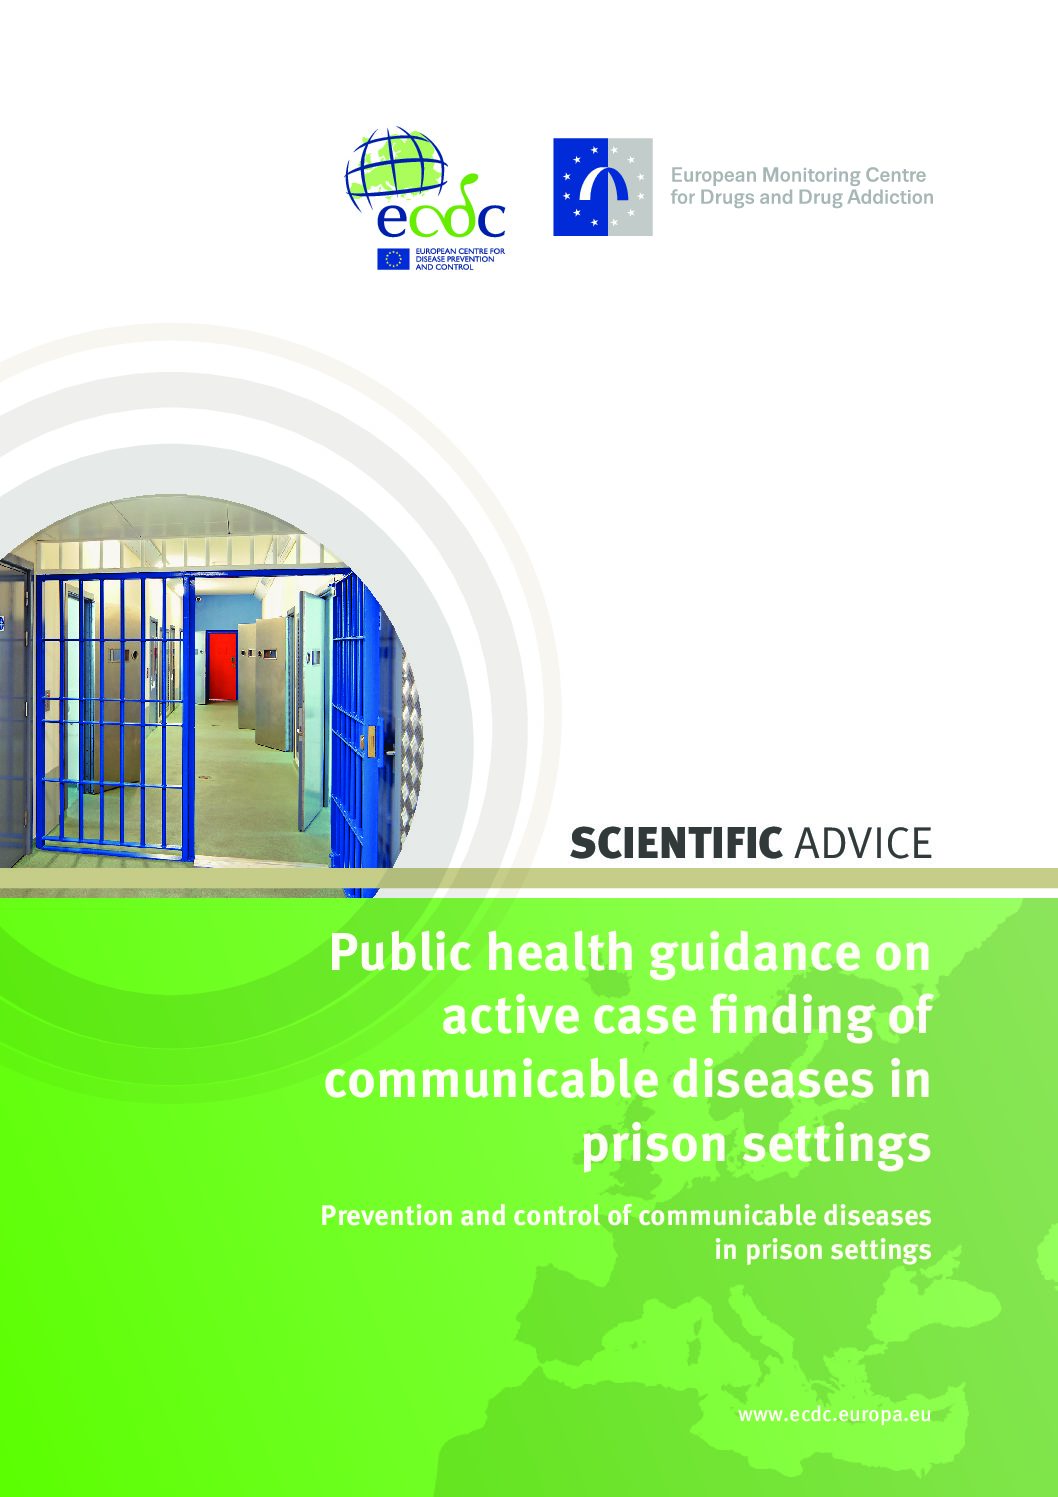 Public health guidance on active case finding of communicable diseases in prison settings